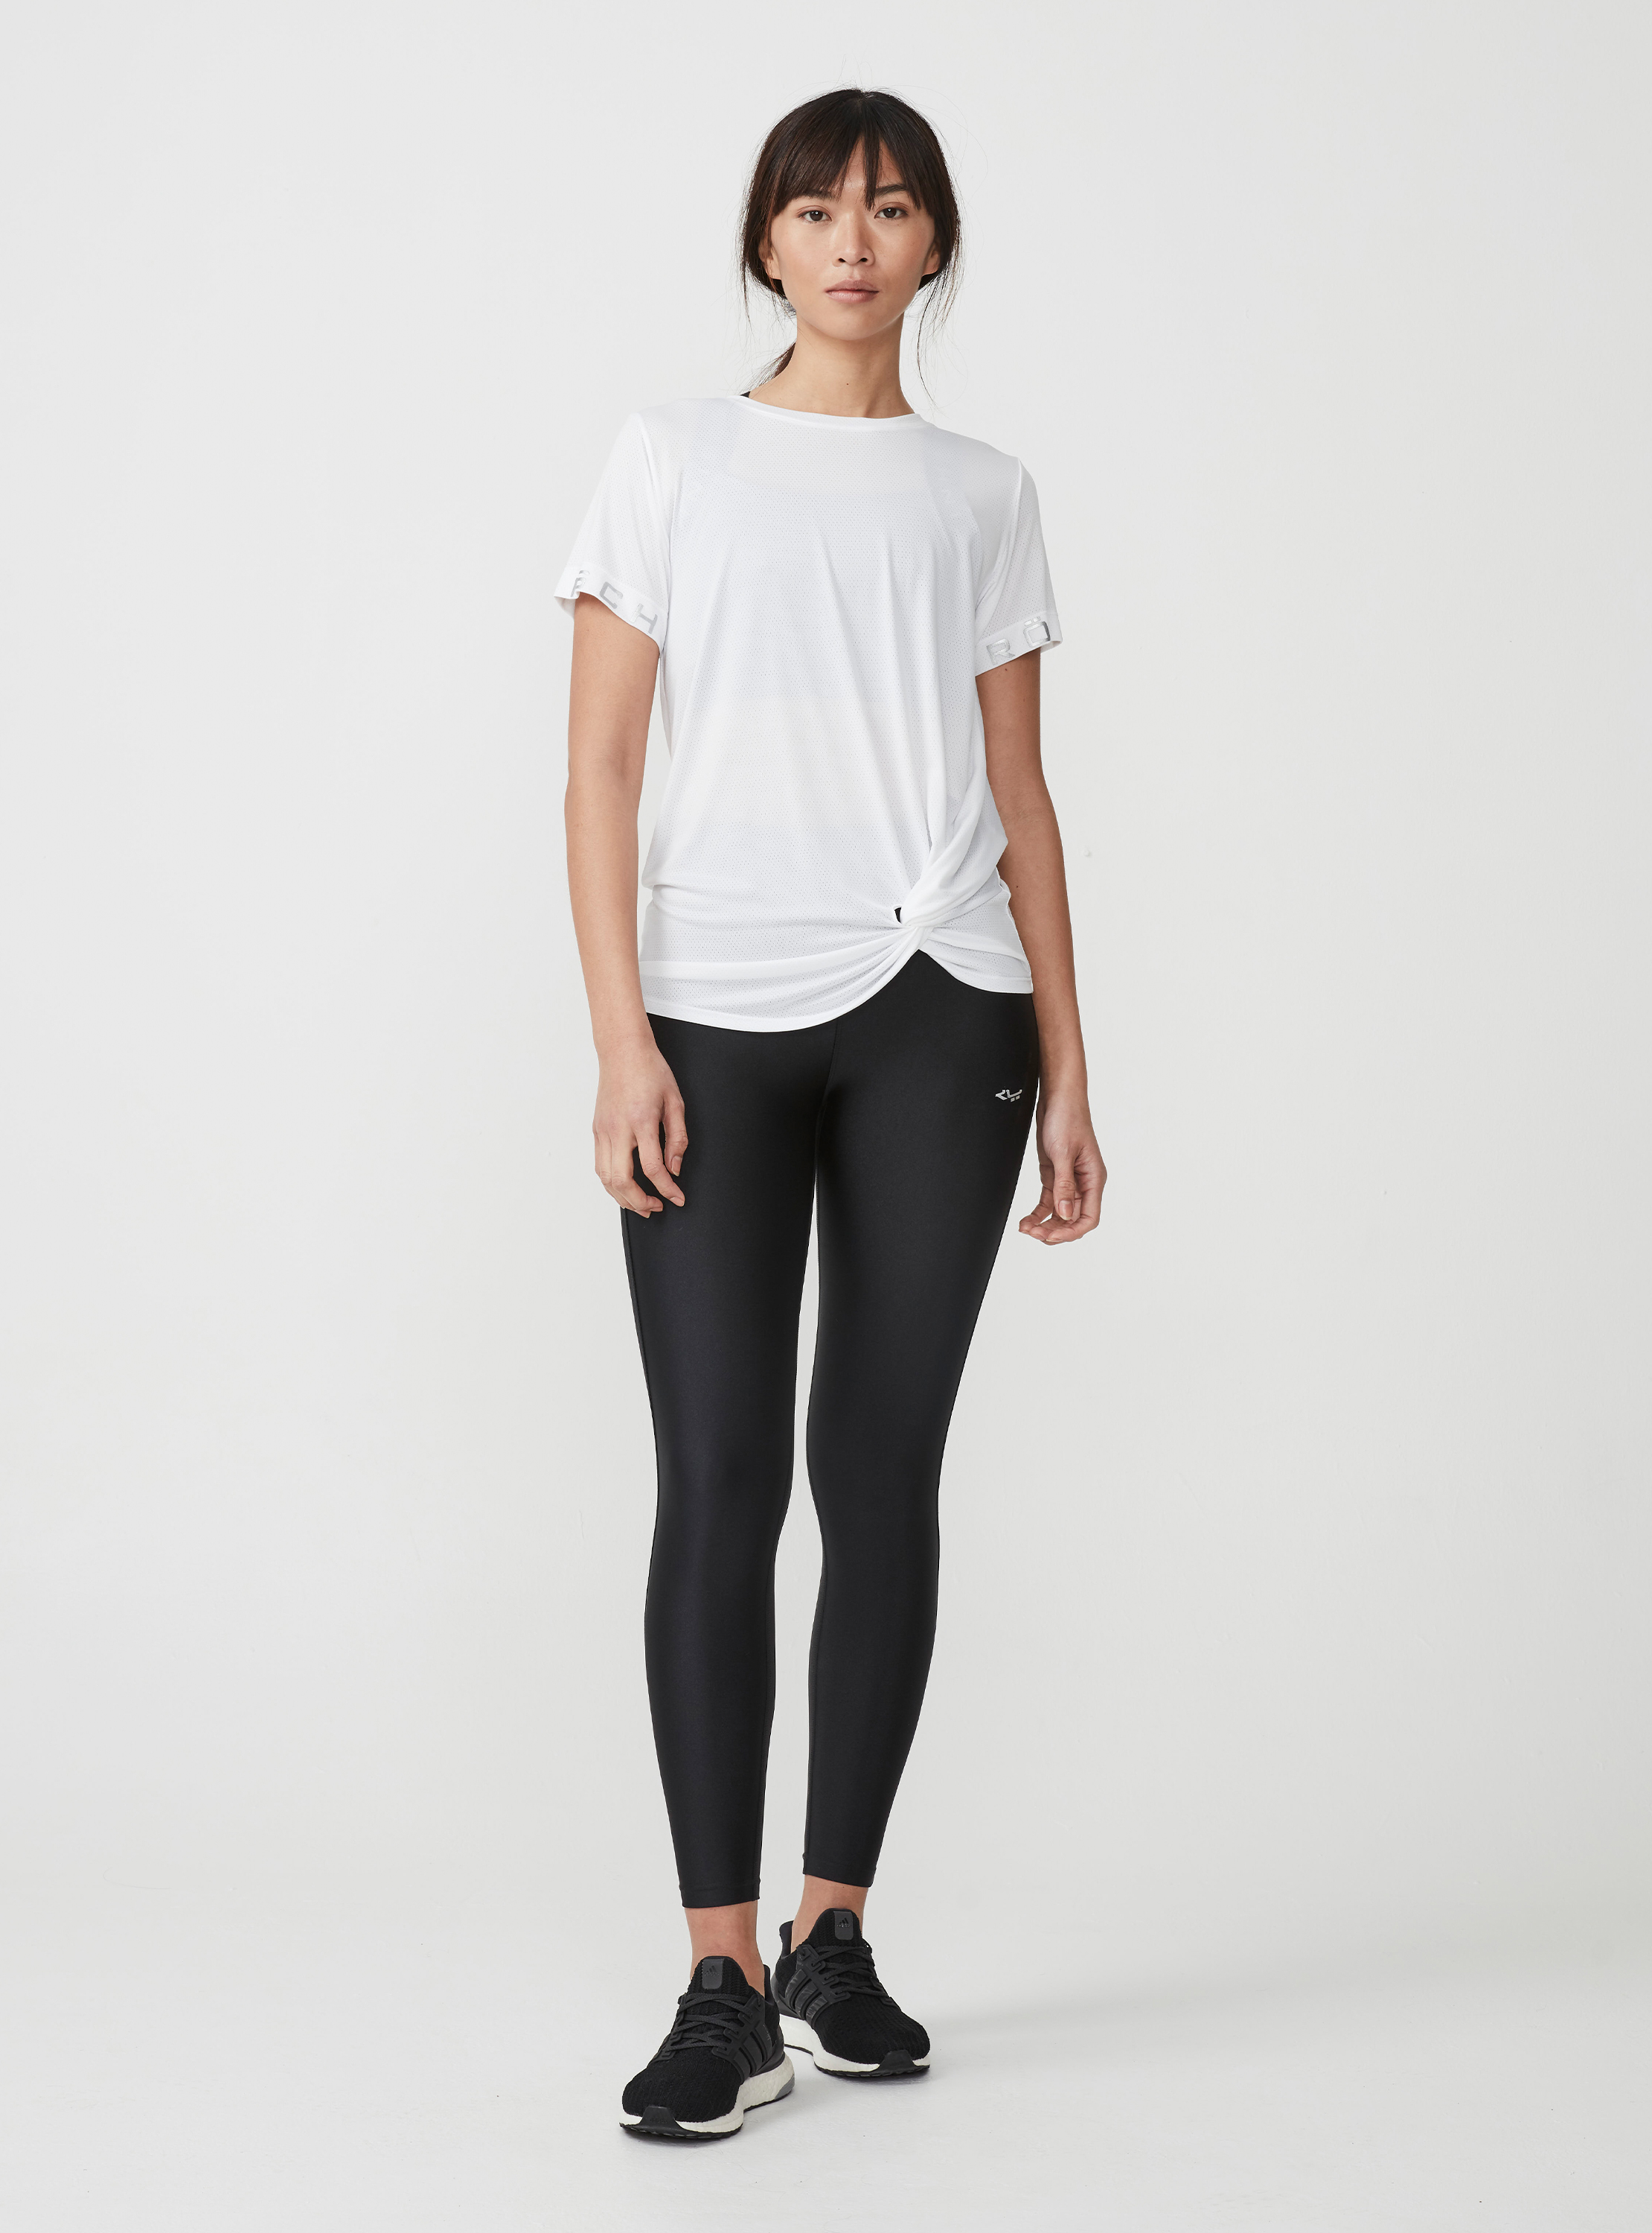 Shop the look - Knot tee, White